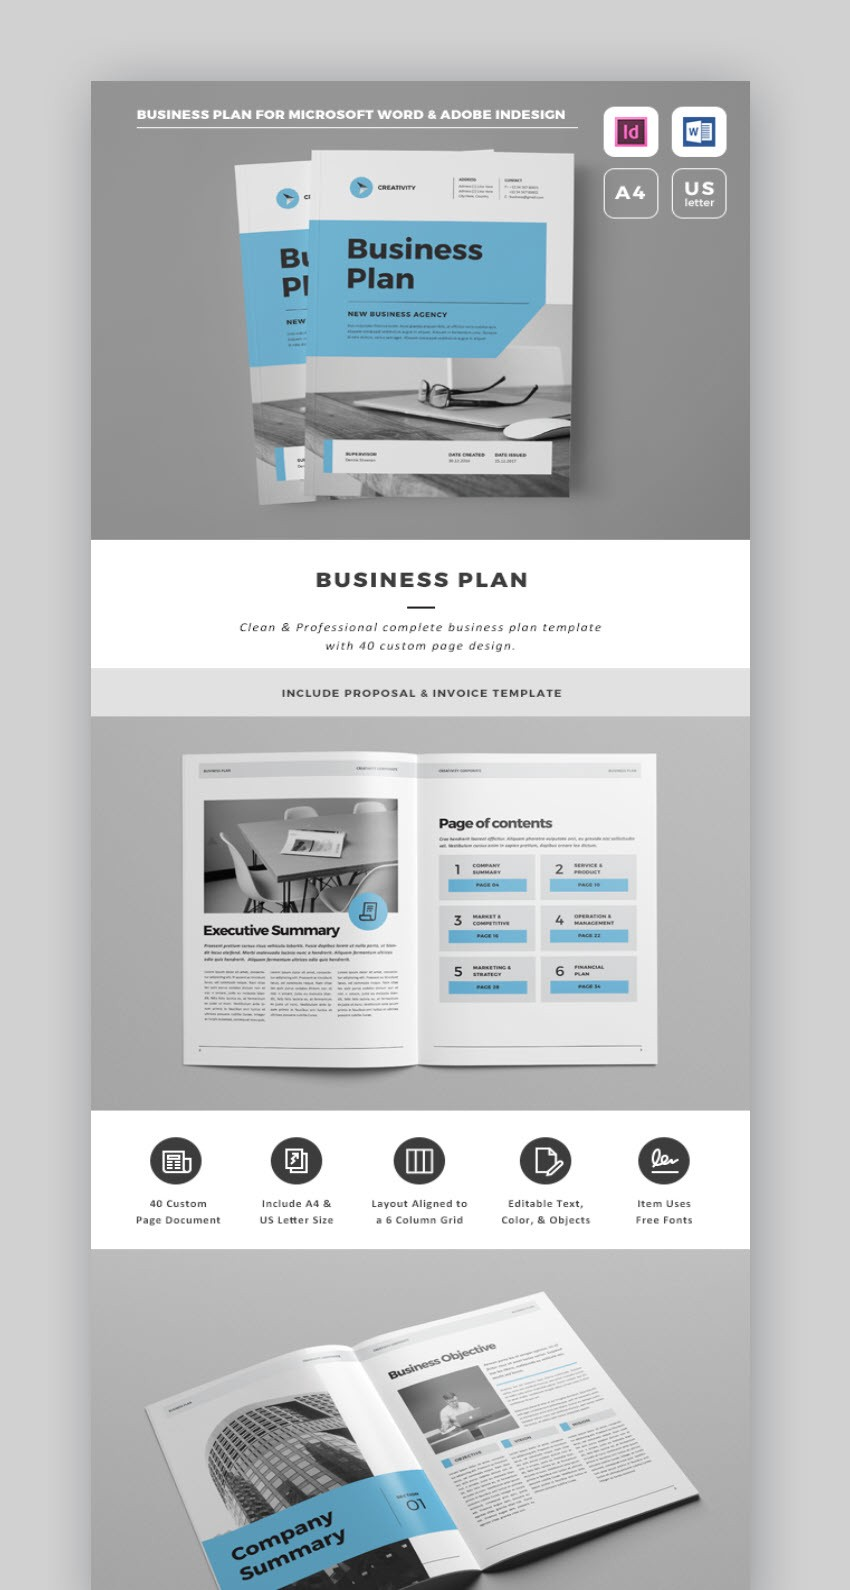 20 best proposal templates best digital themes medium this professional business plan template includes a first class business proposal template youll get a 40 page indesign business template and a 32 page cheaphphosting Images